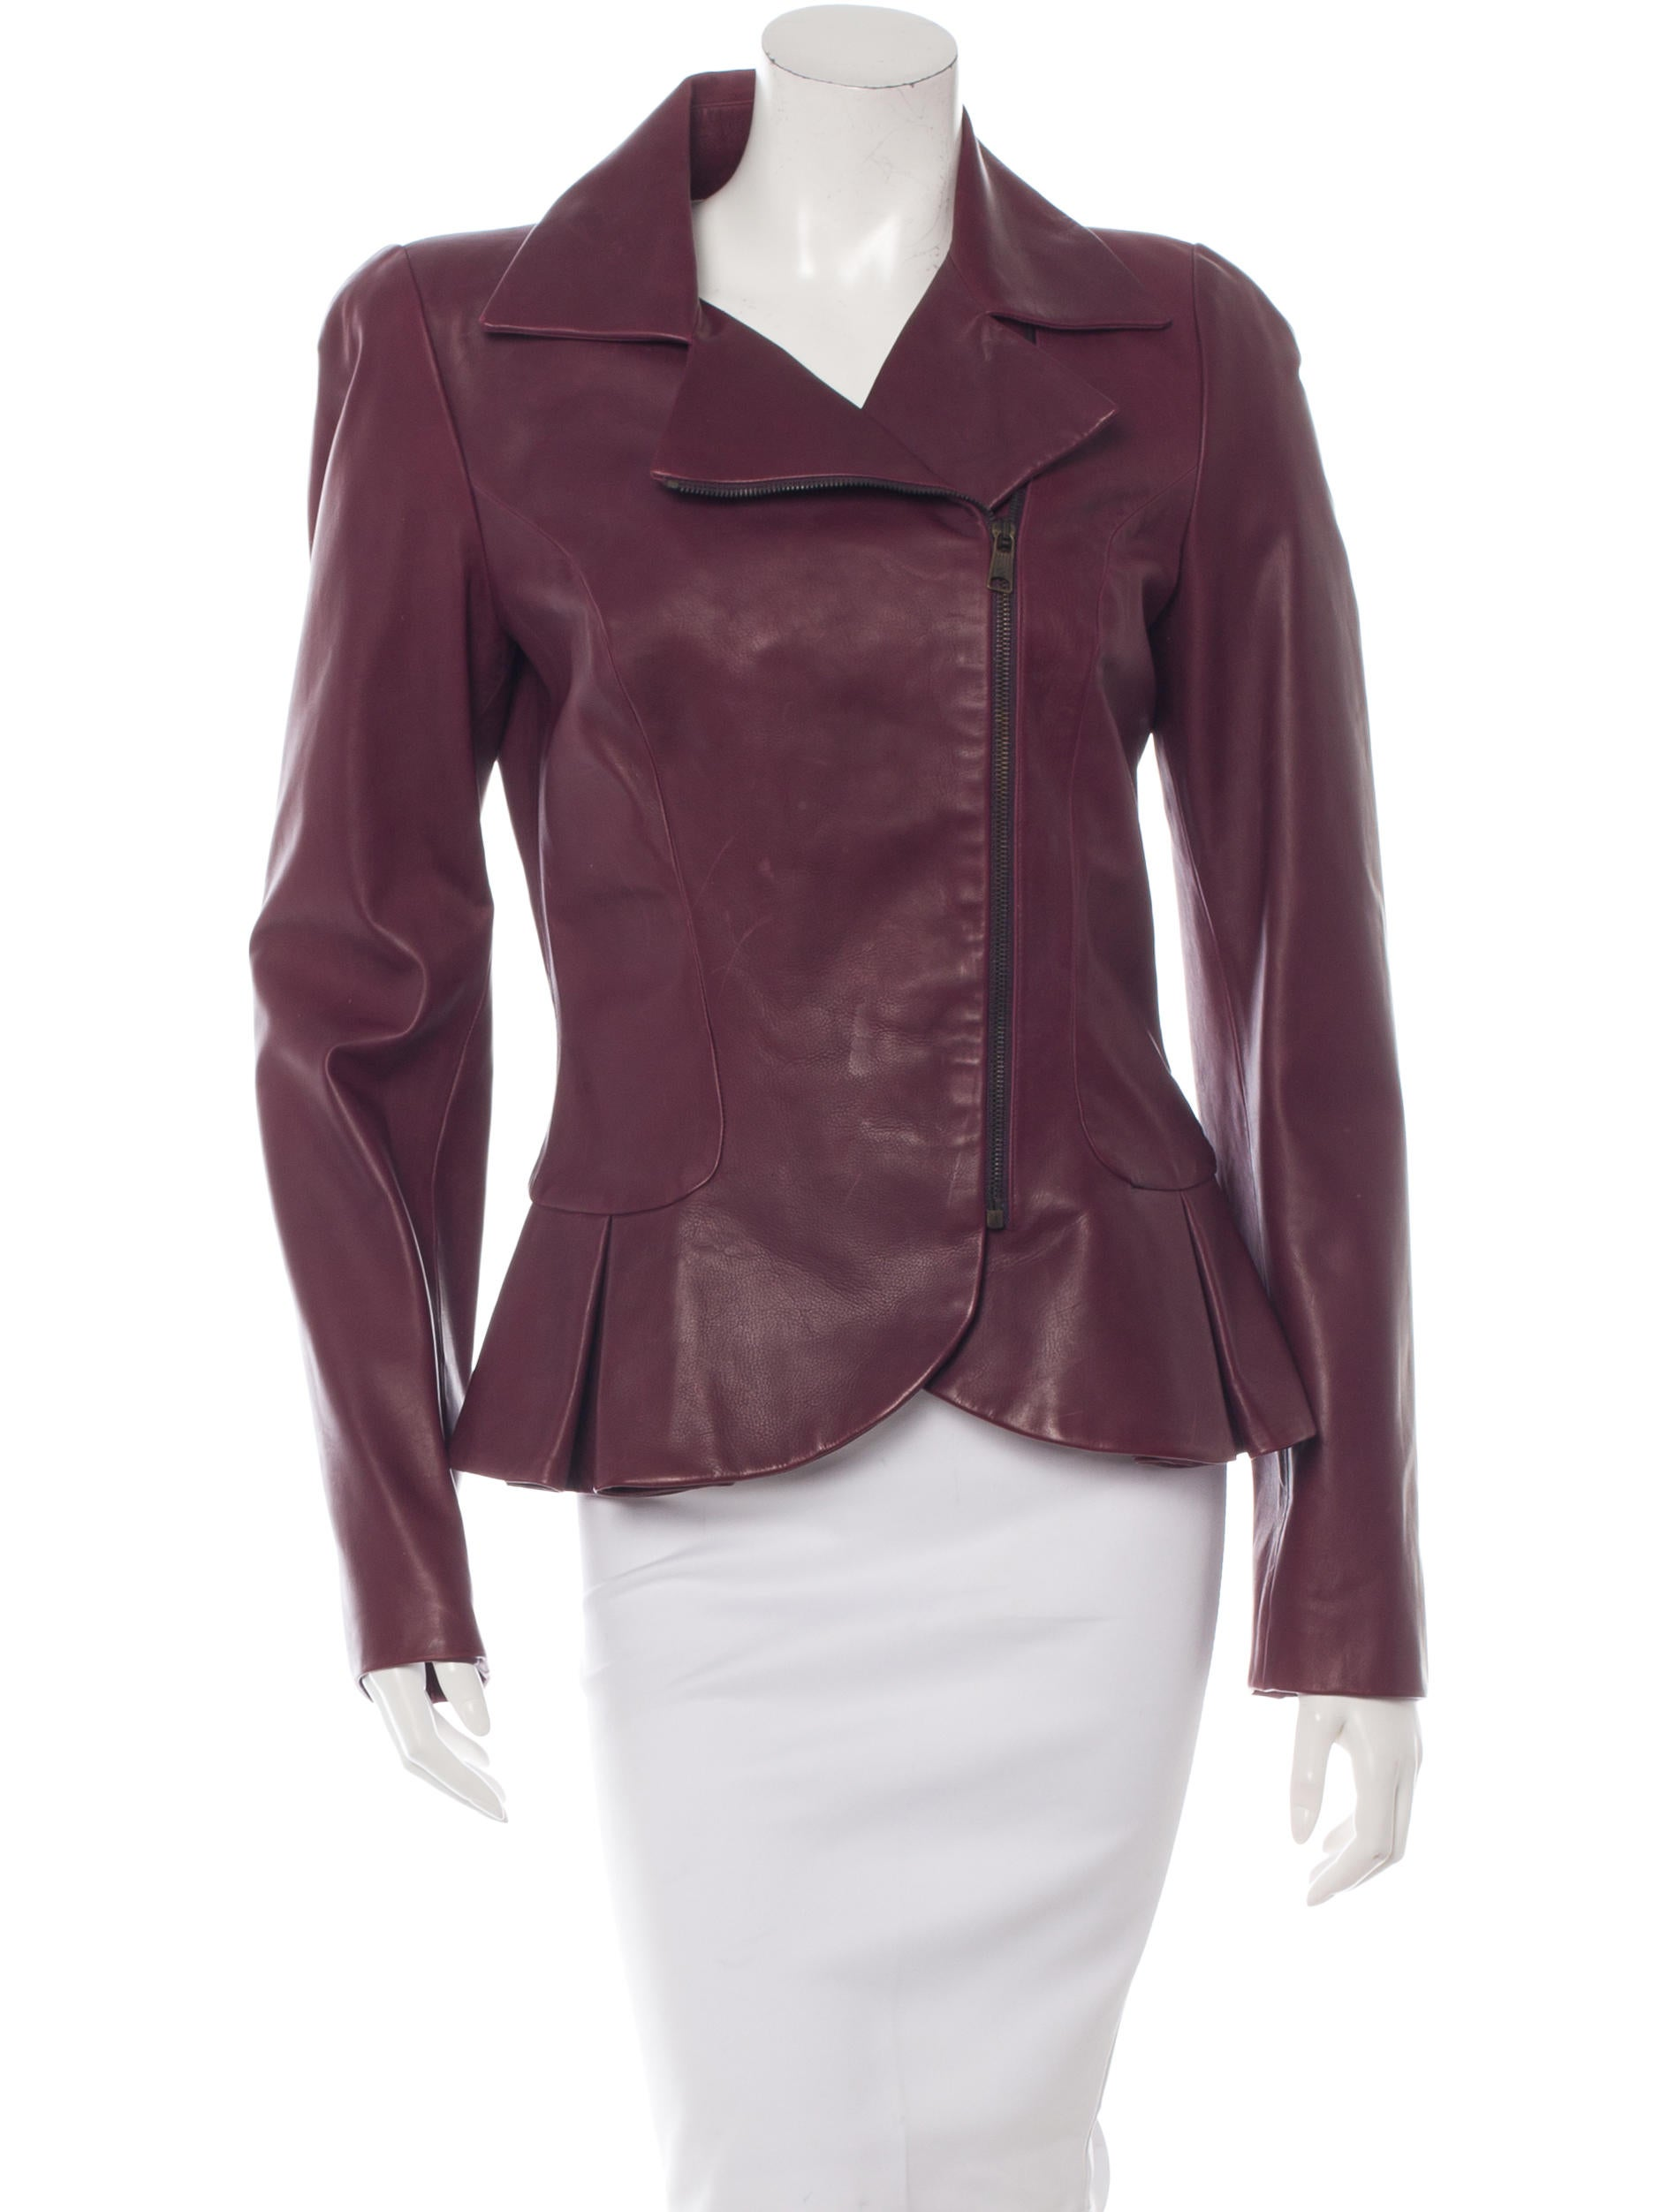 More Details Elie Saab Zip-Front Belted Leather Peplum Jacket with Stud Details Details Elie Saab jacket in lambskin leather with stud details. Stand collar; zip front. Stand collar; zip front. Long sleeves; zip cuffs.